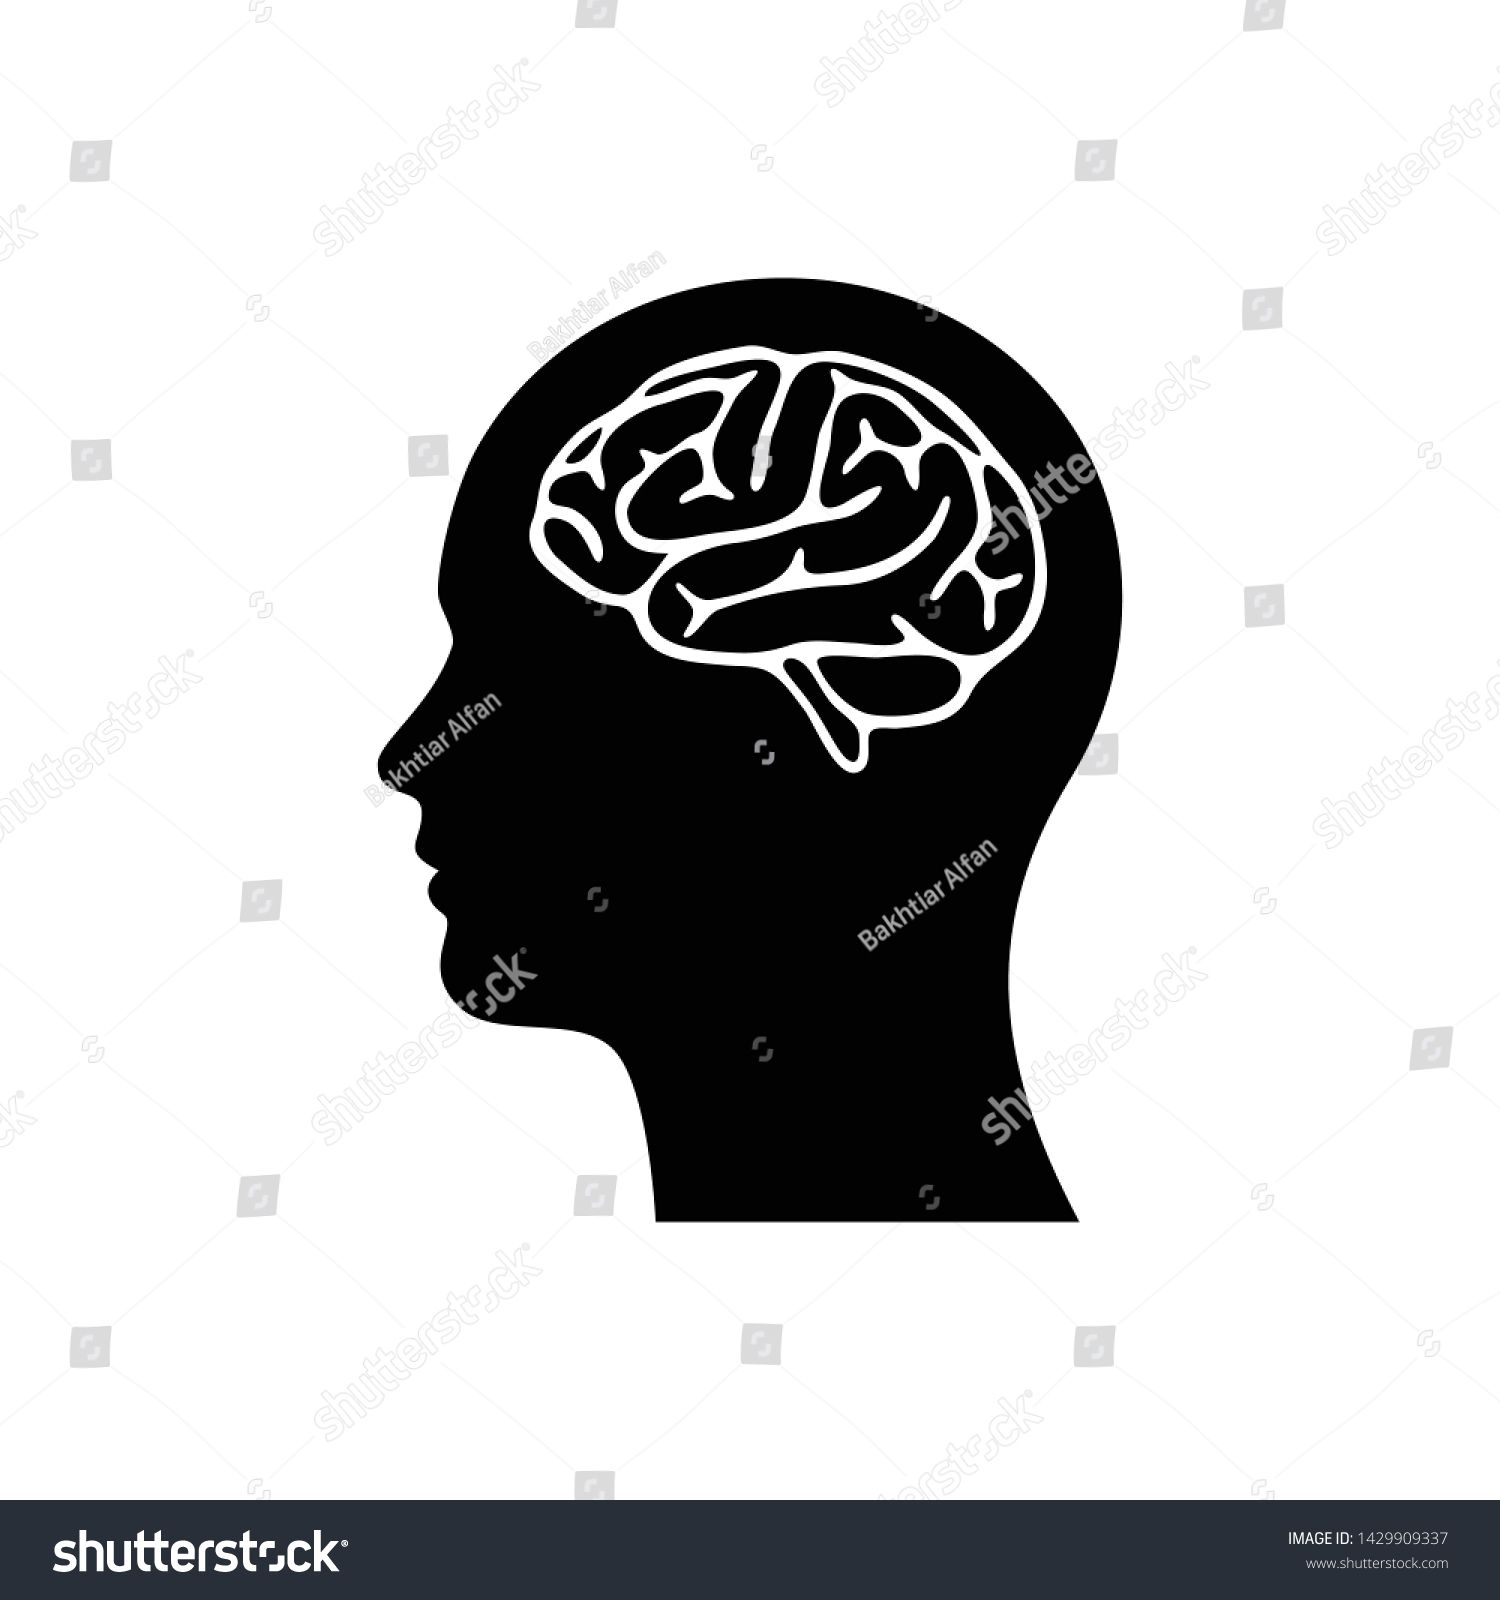 Silhouette head with brain vector flat illustation isolated on white simple and clean brain icon